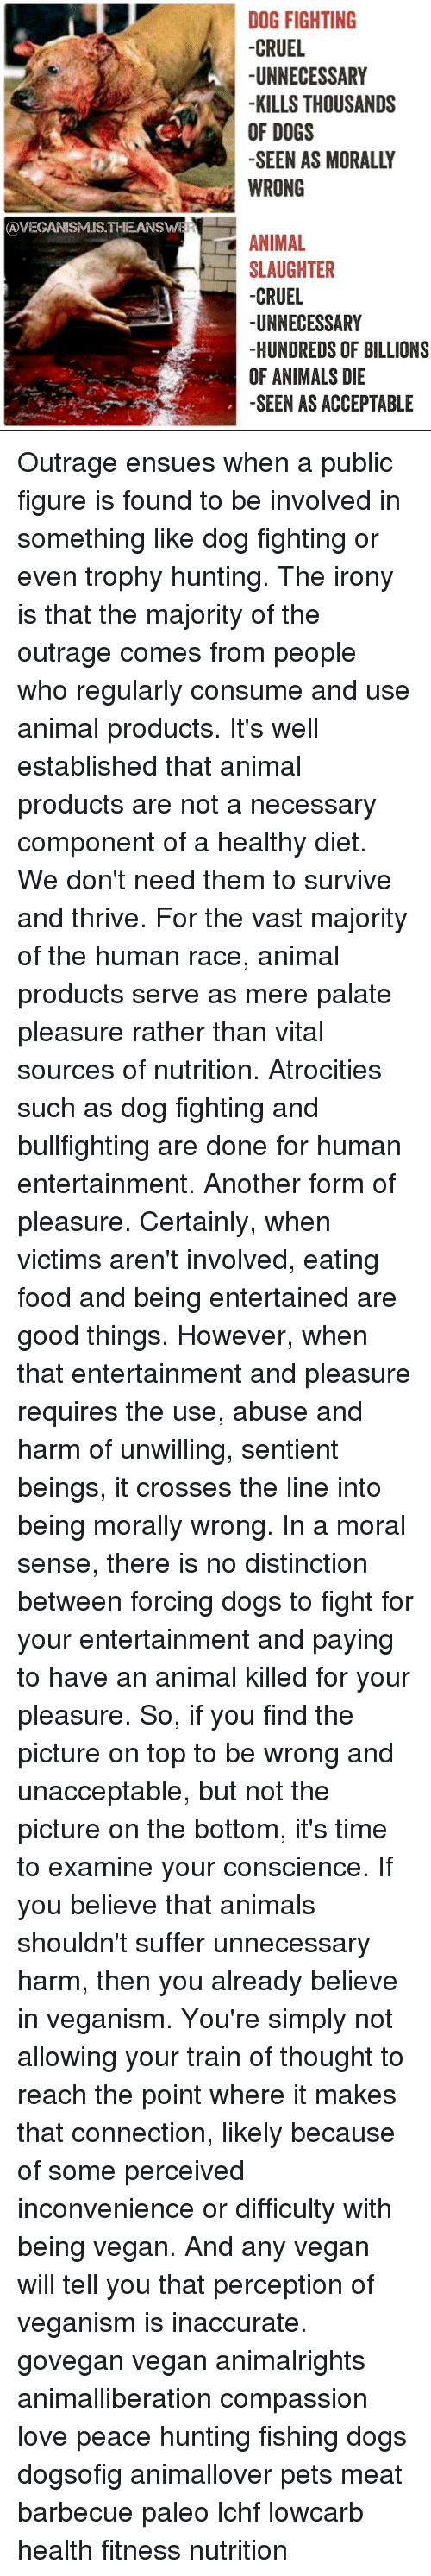 is hunting animals morally acceptable